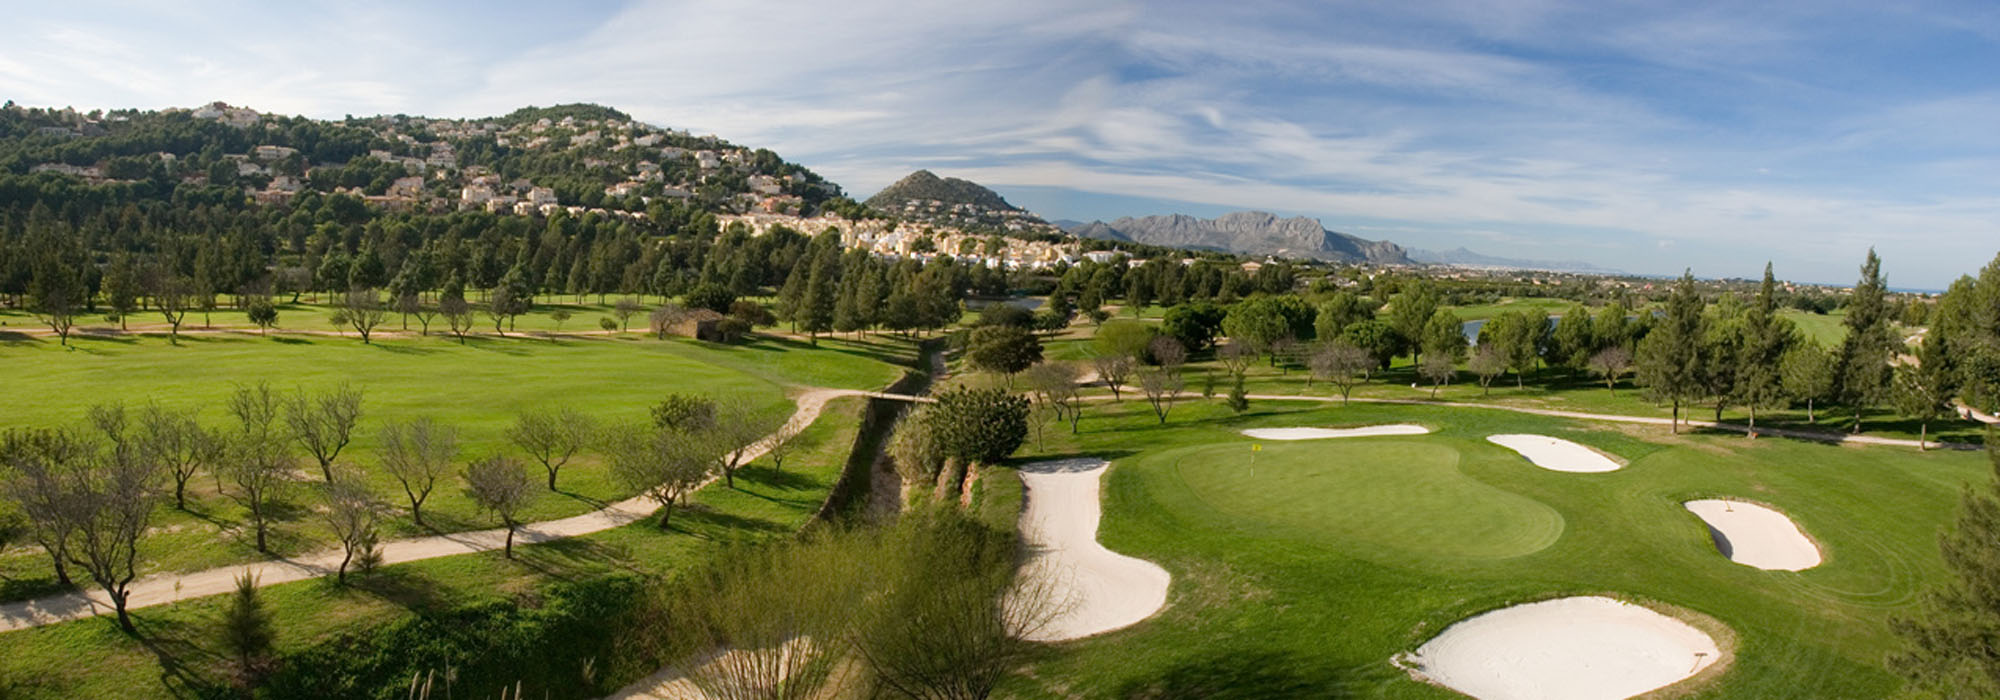 27 hole La Sella golf